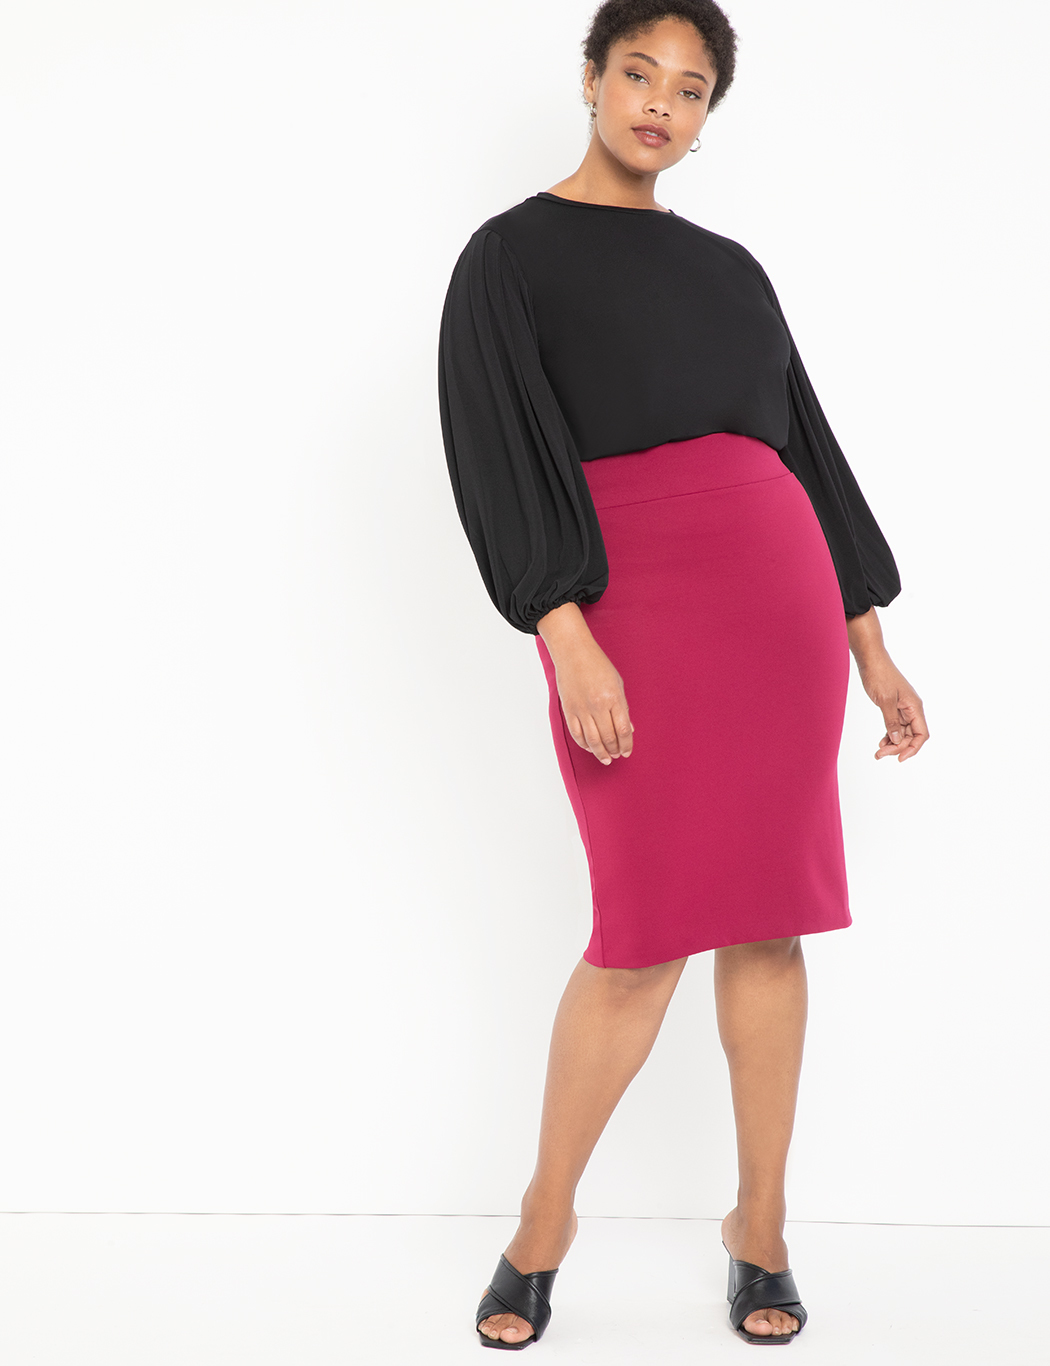 Neoprene Pencil Skirt 15